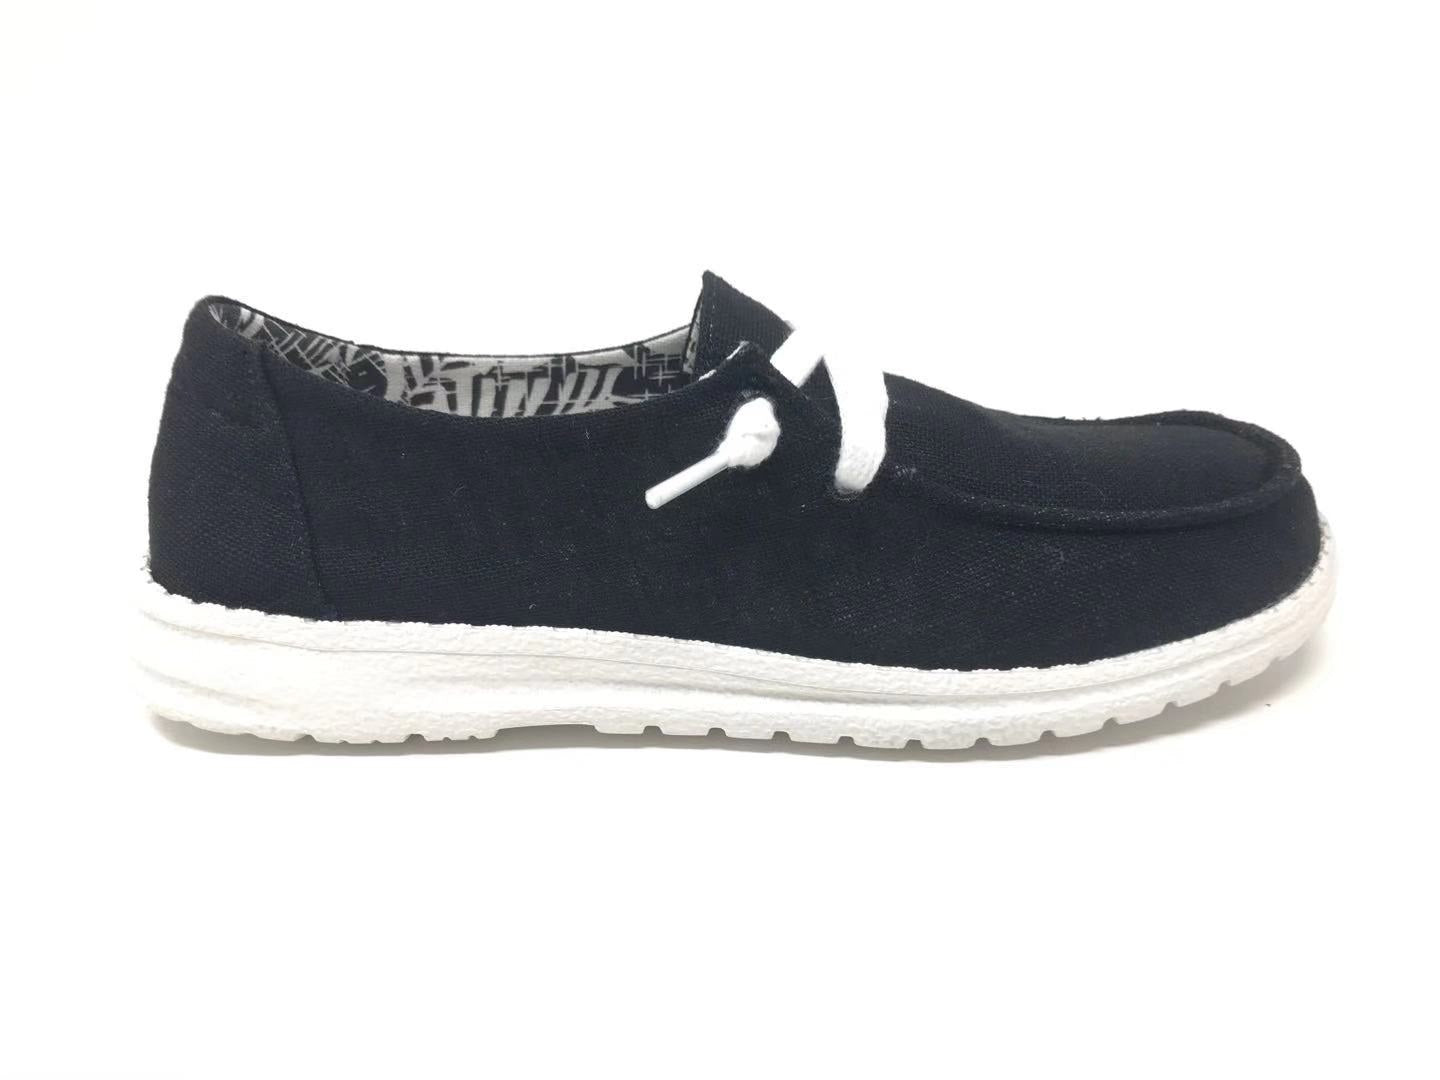 Gypsy Jazz Slip On Sneaker Black